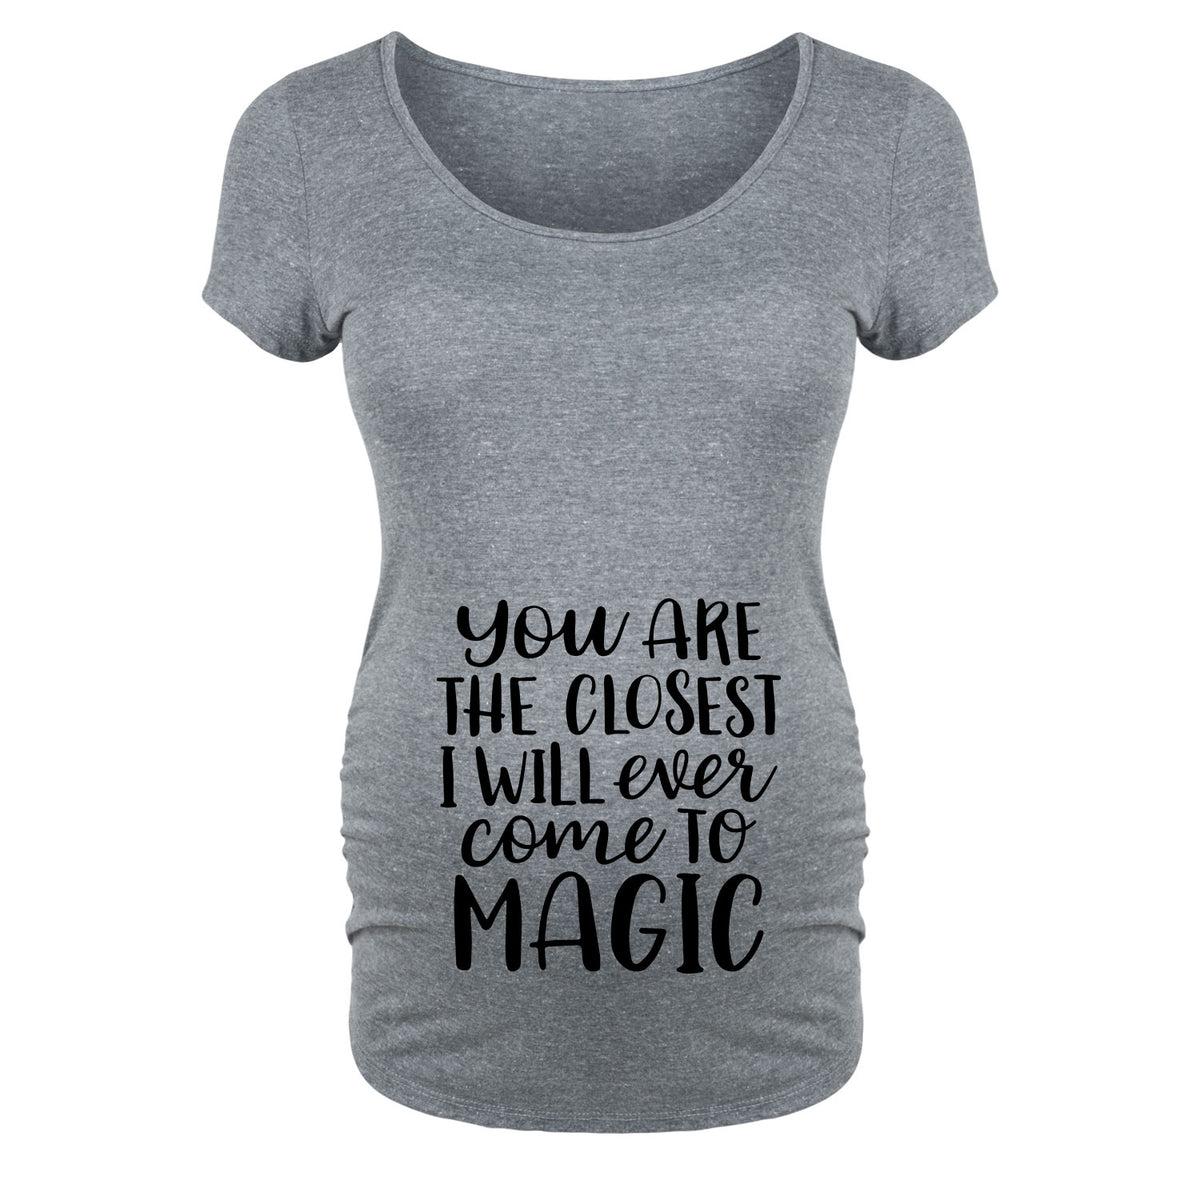 You Are The Closest I Will Ever Come To Magic - Maternity Short Sleeve T-Shirt